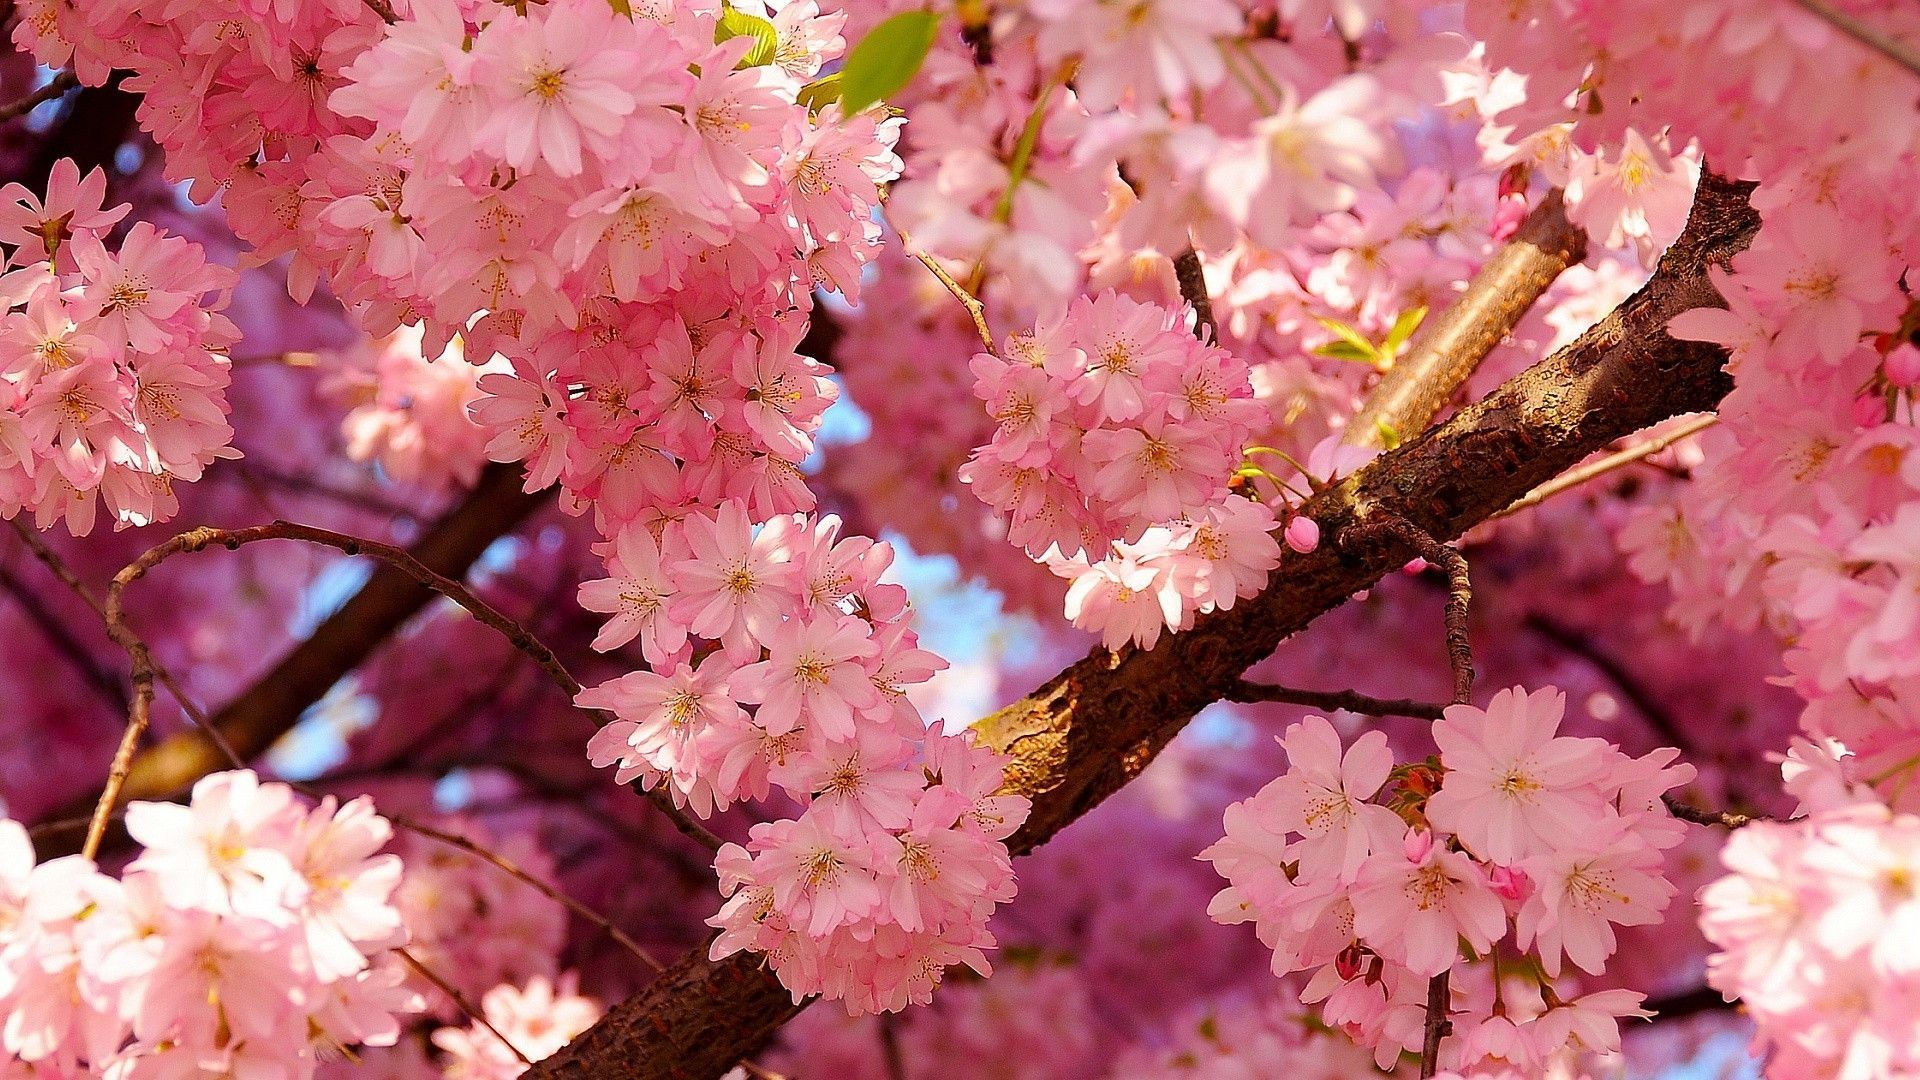 Spring background download free beautiful hd backgrounds for desktop mobile laptop in any - Backgrounds springtime ...